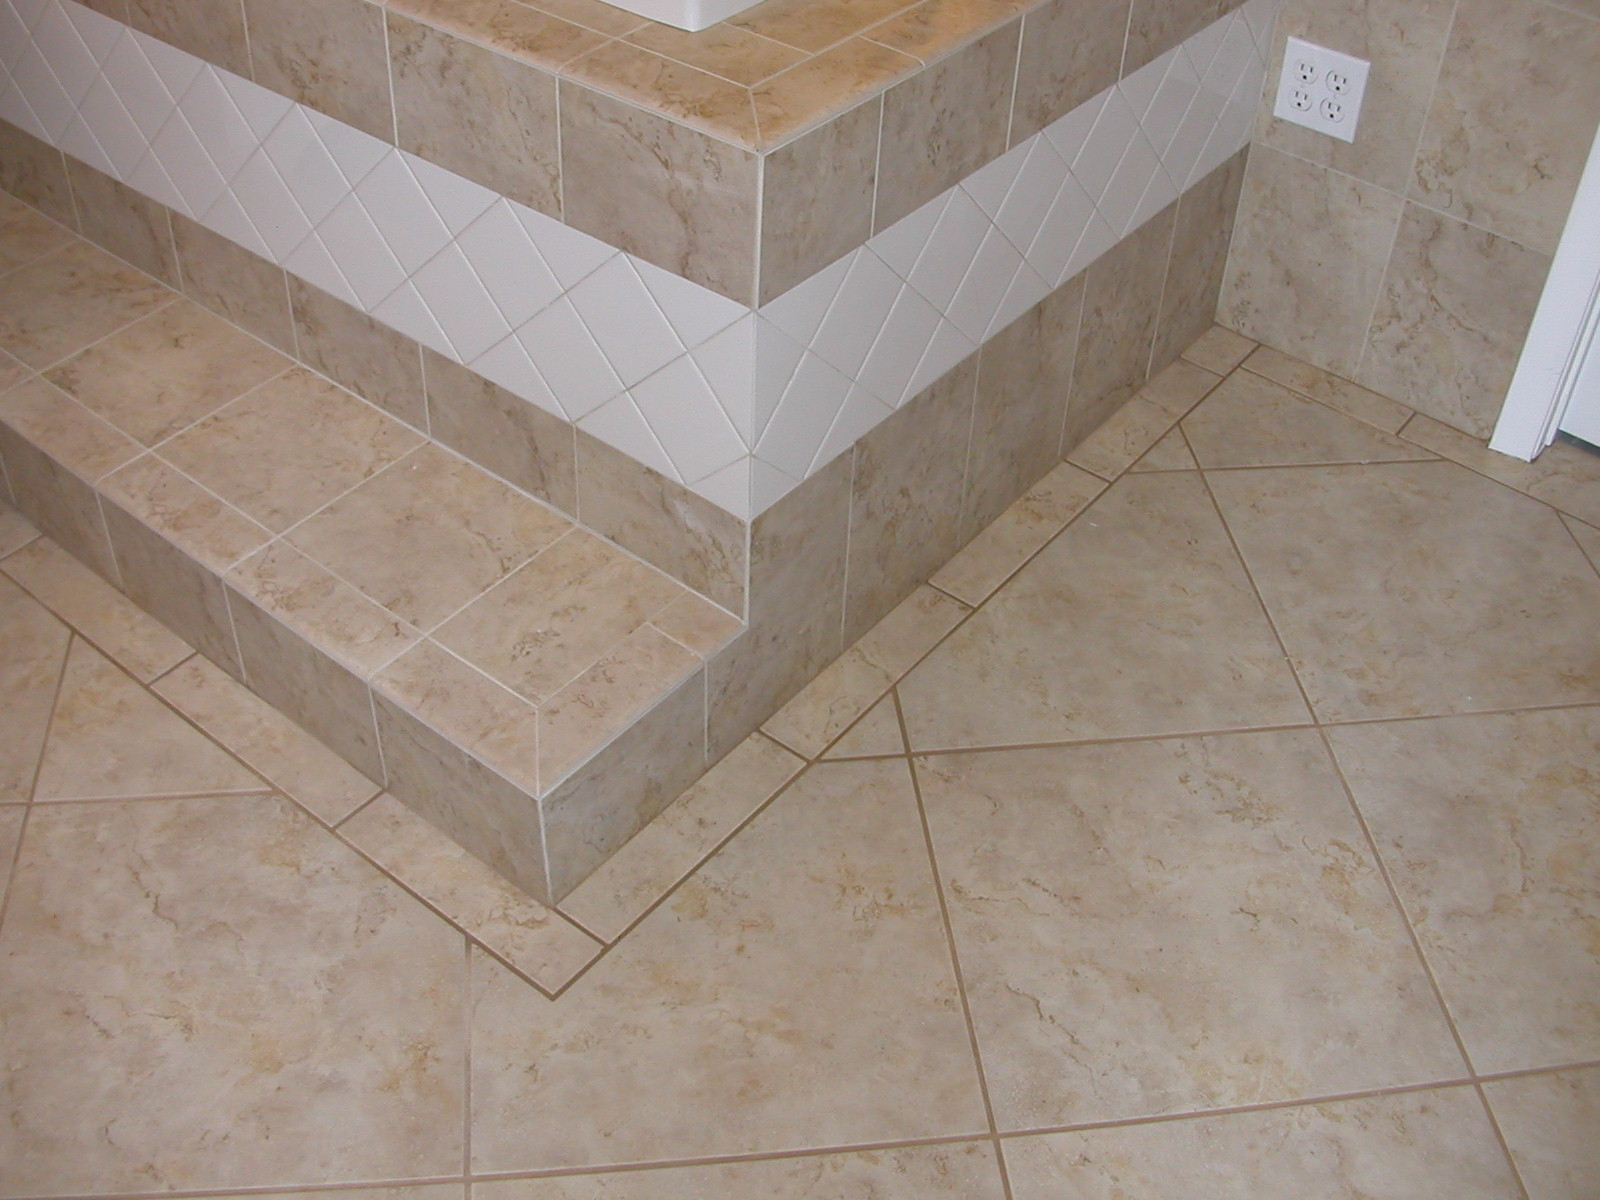 Travertine Kitchen Floor Tiles Southeast Volusia Building And Remodeling Floors Tile Travertine